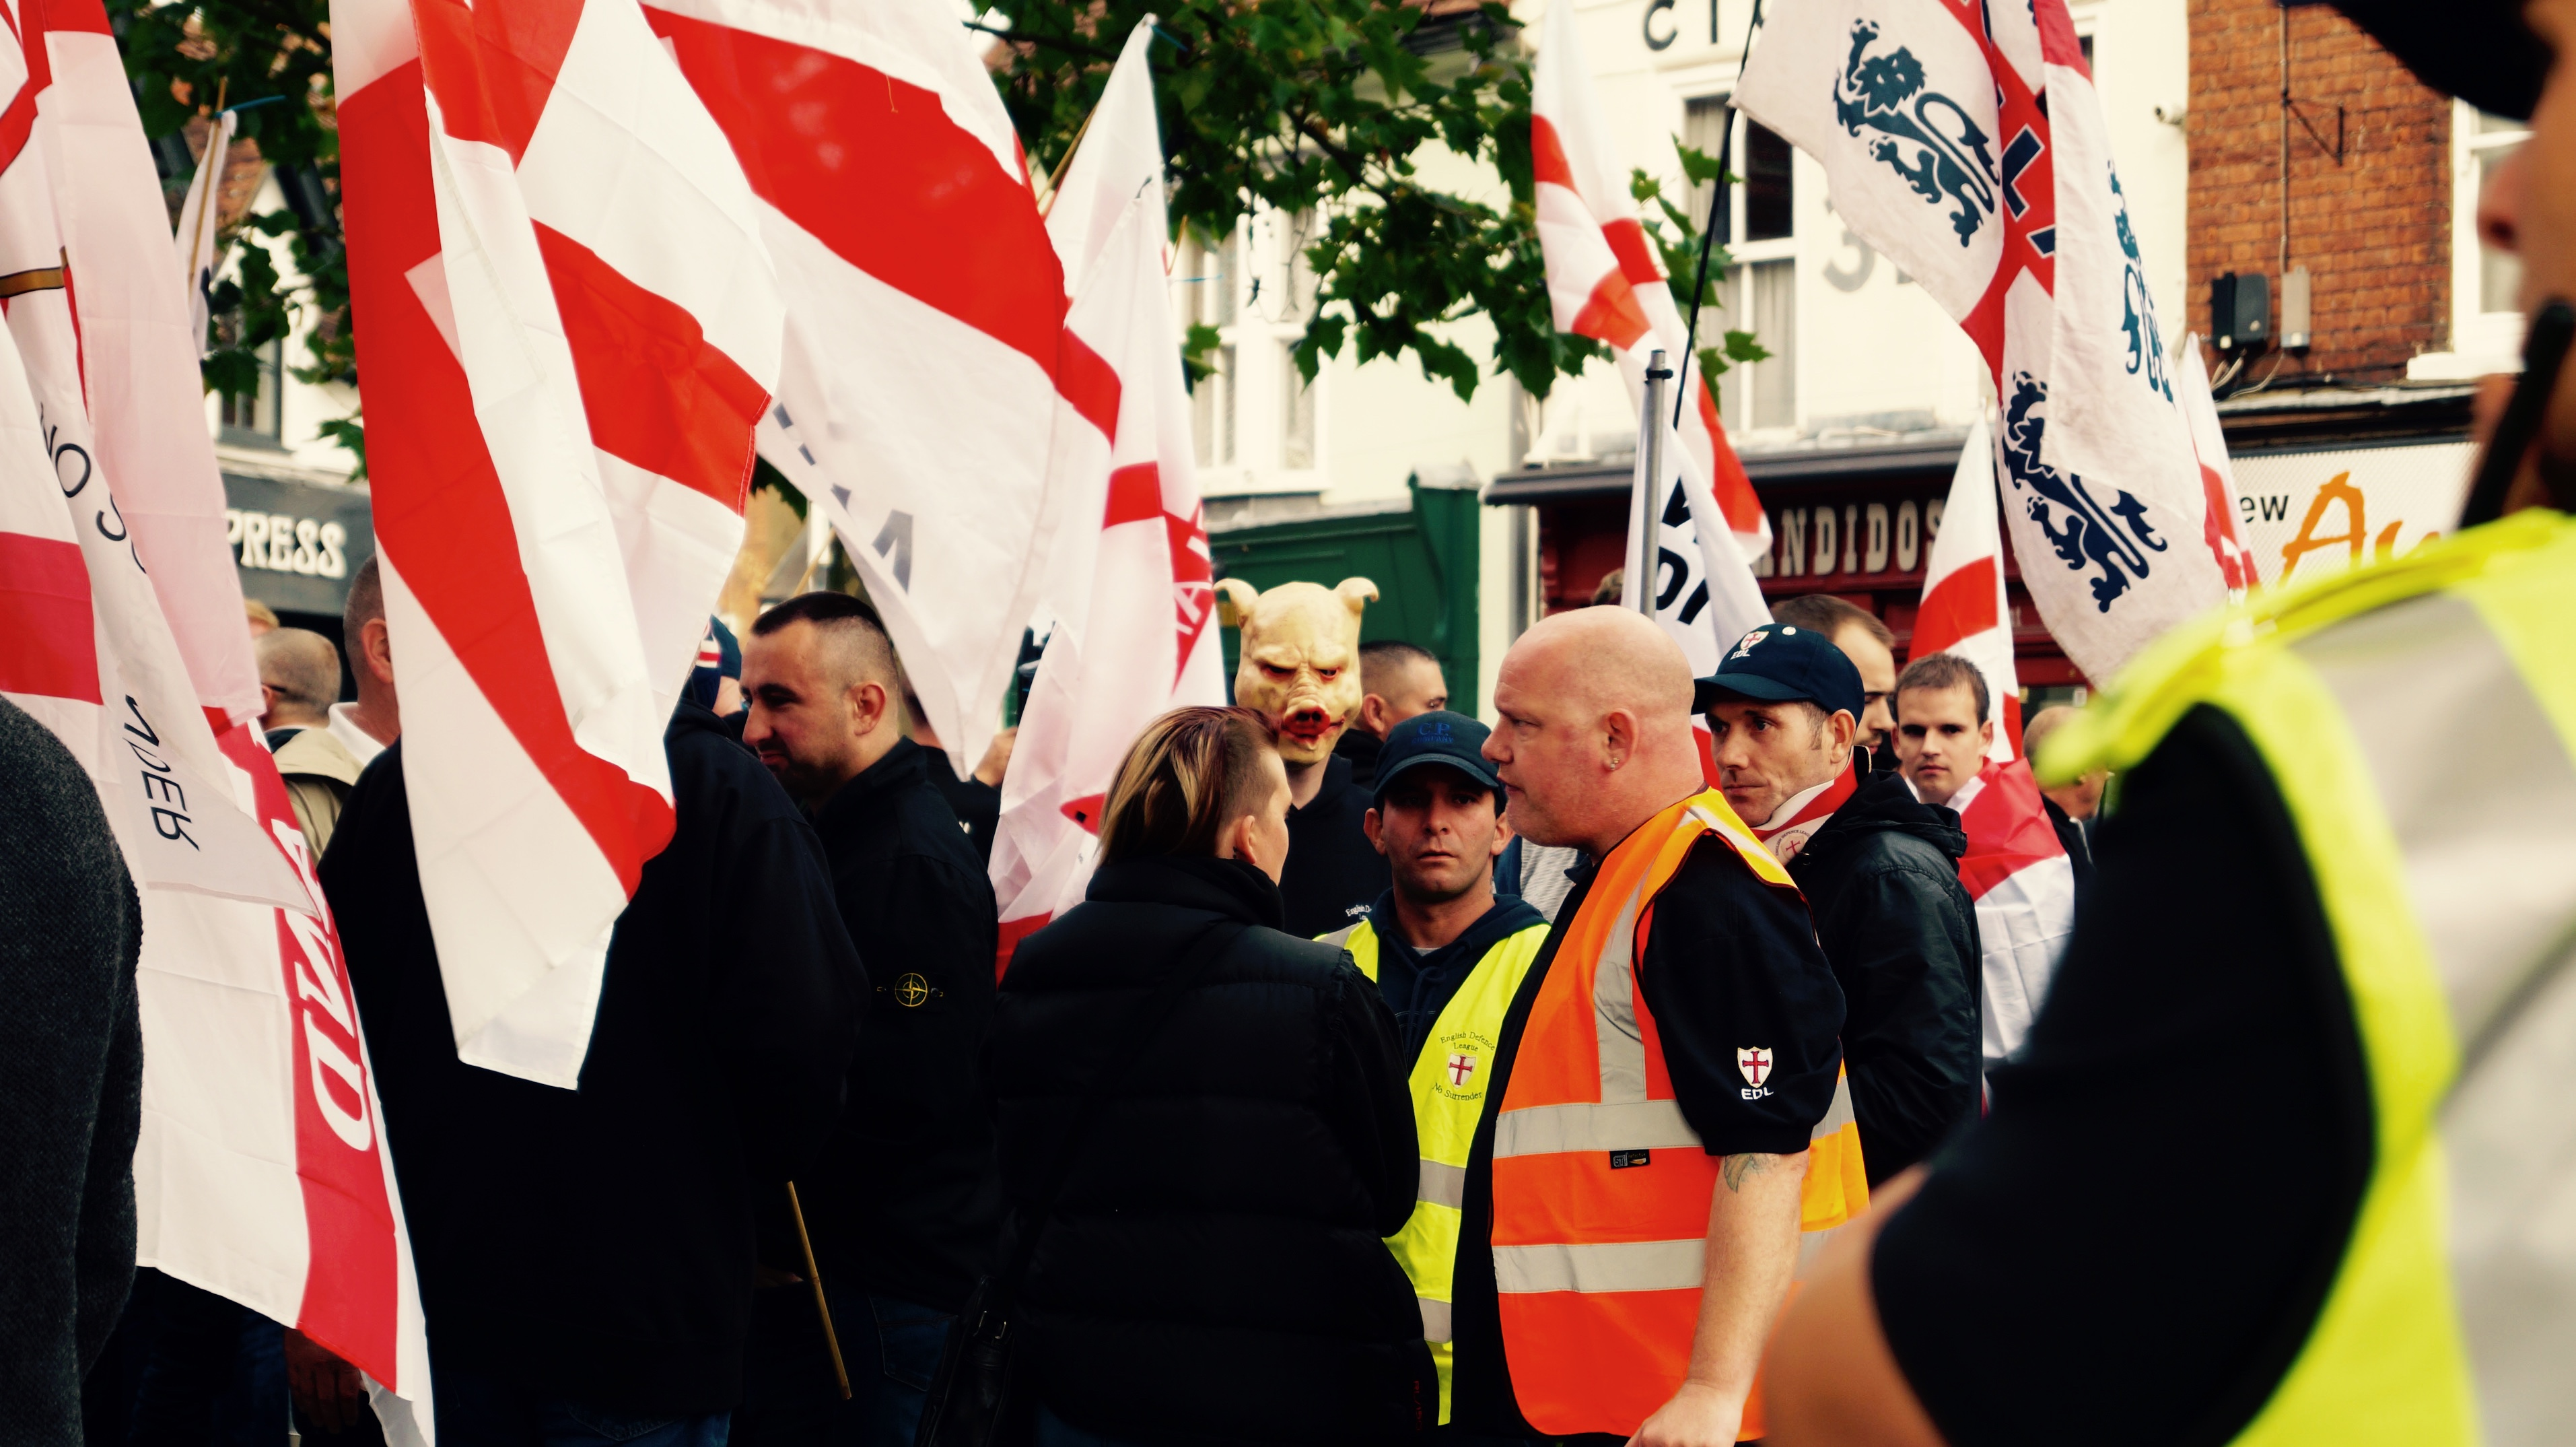 The EDL at Aylesbury